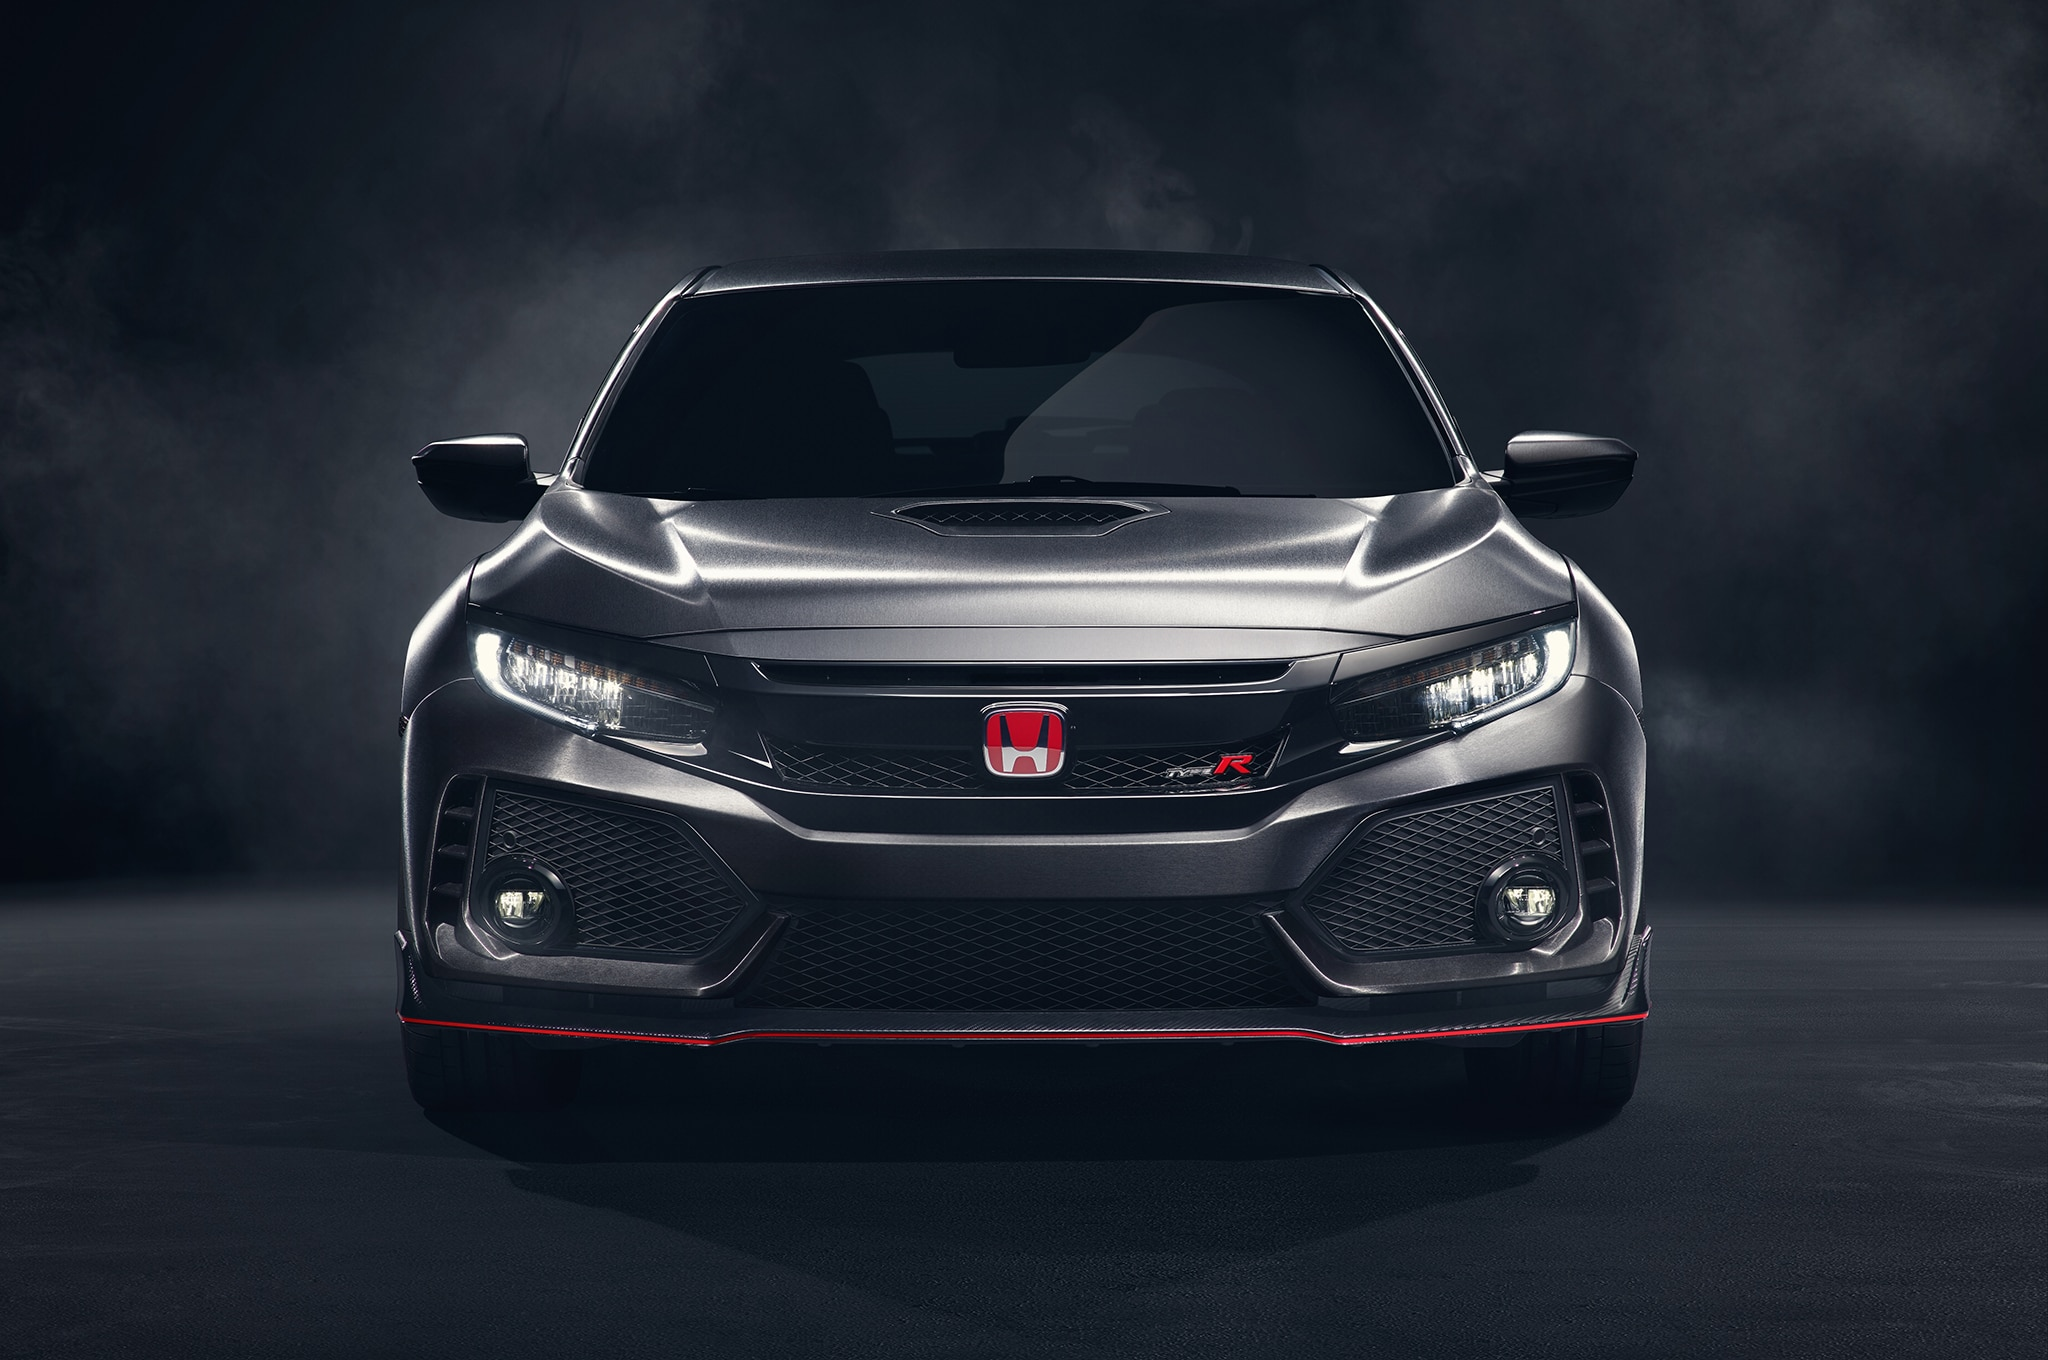 Honda Previews Production USSpec Civic Type R with Sharp New